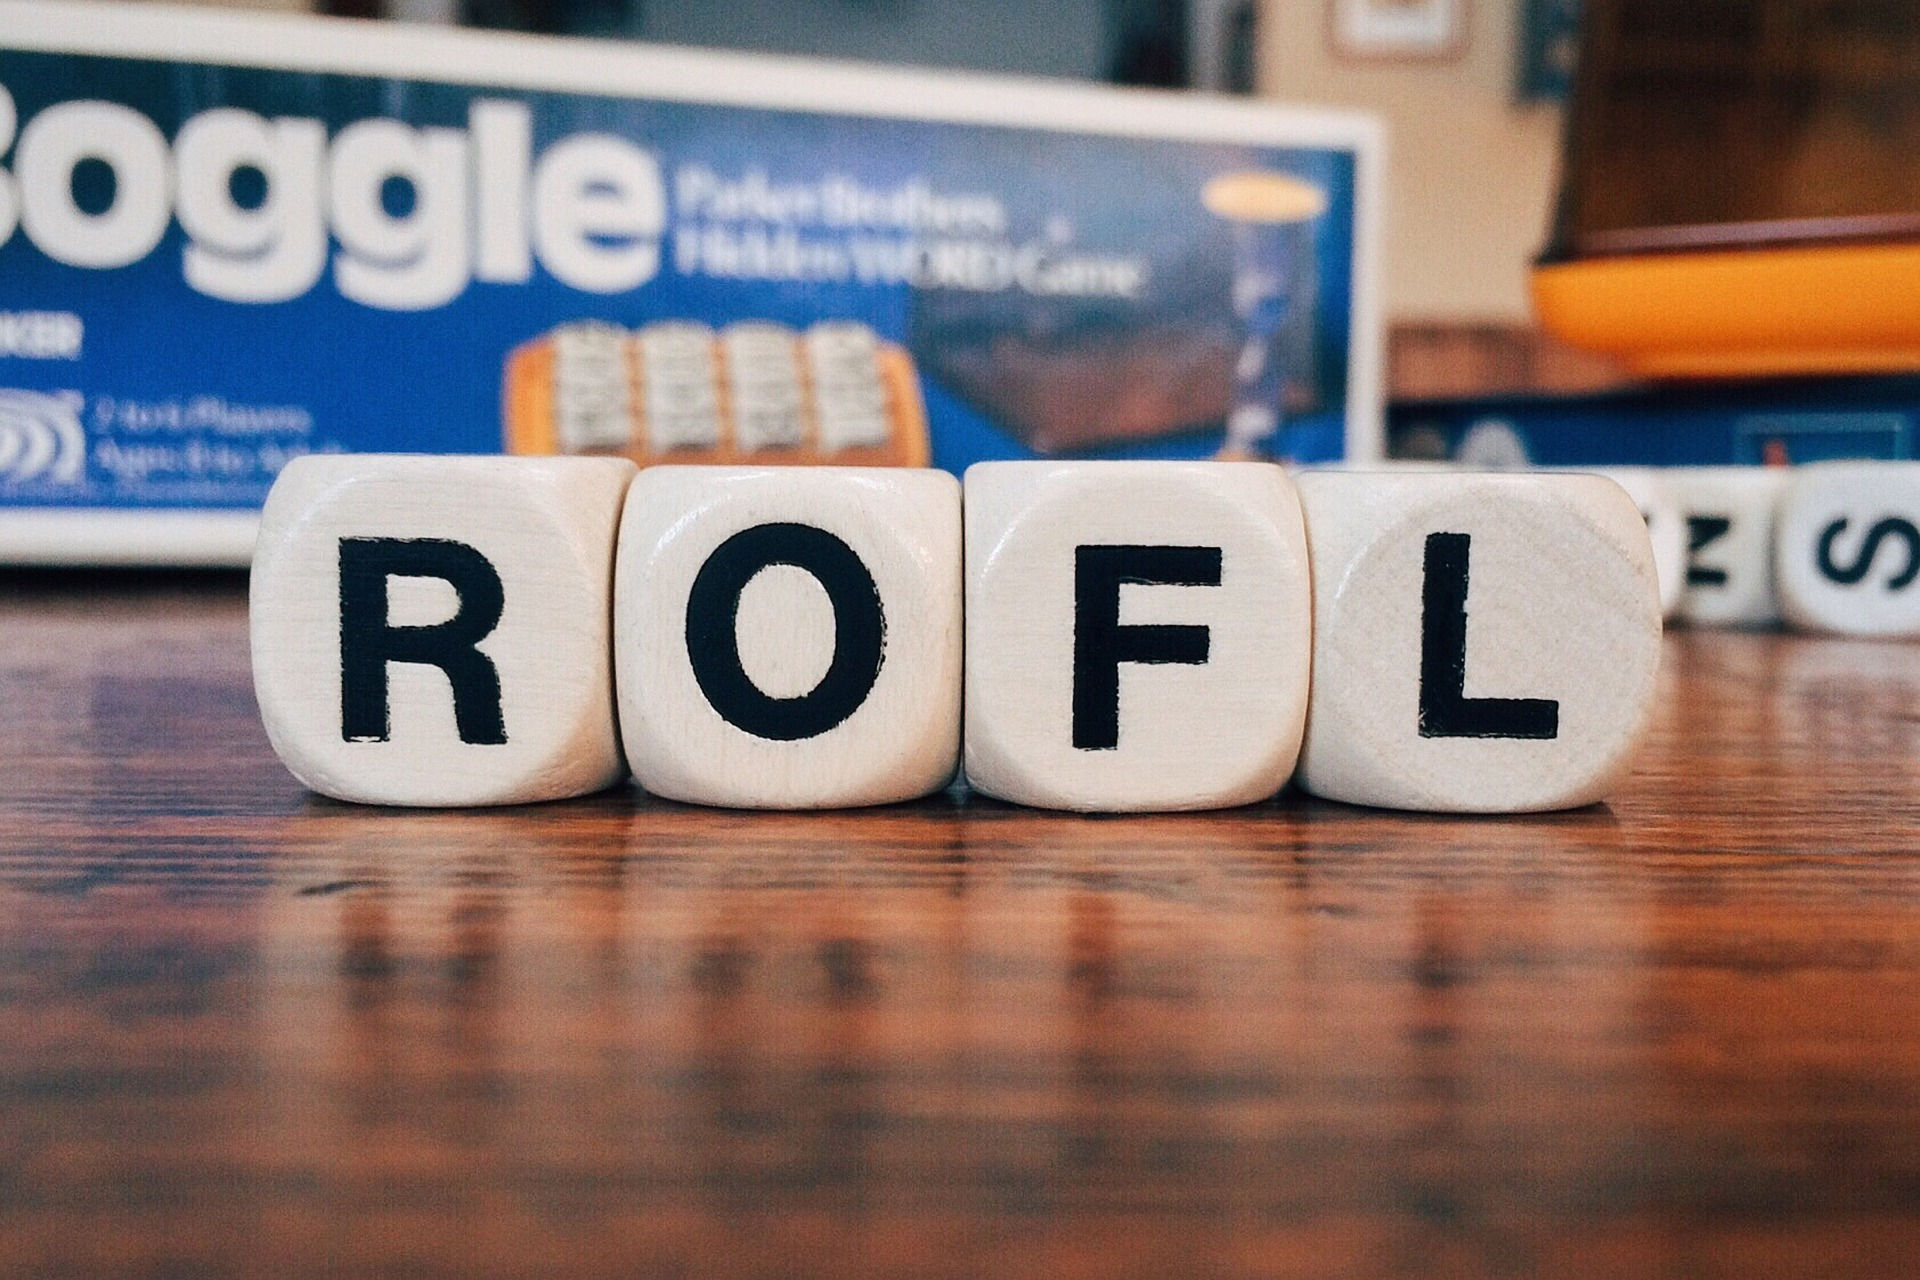 cubes with letters r o f l